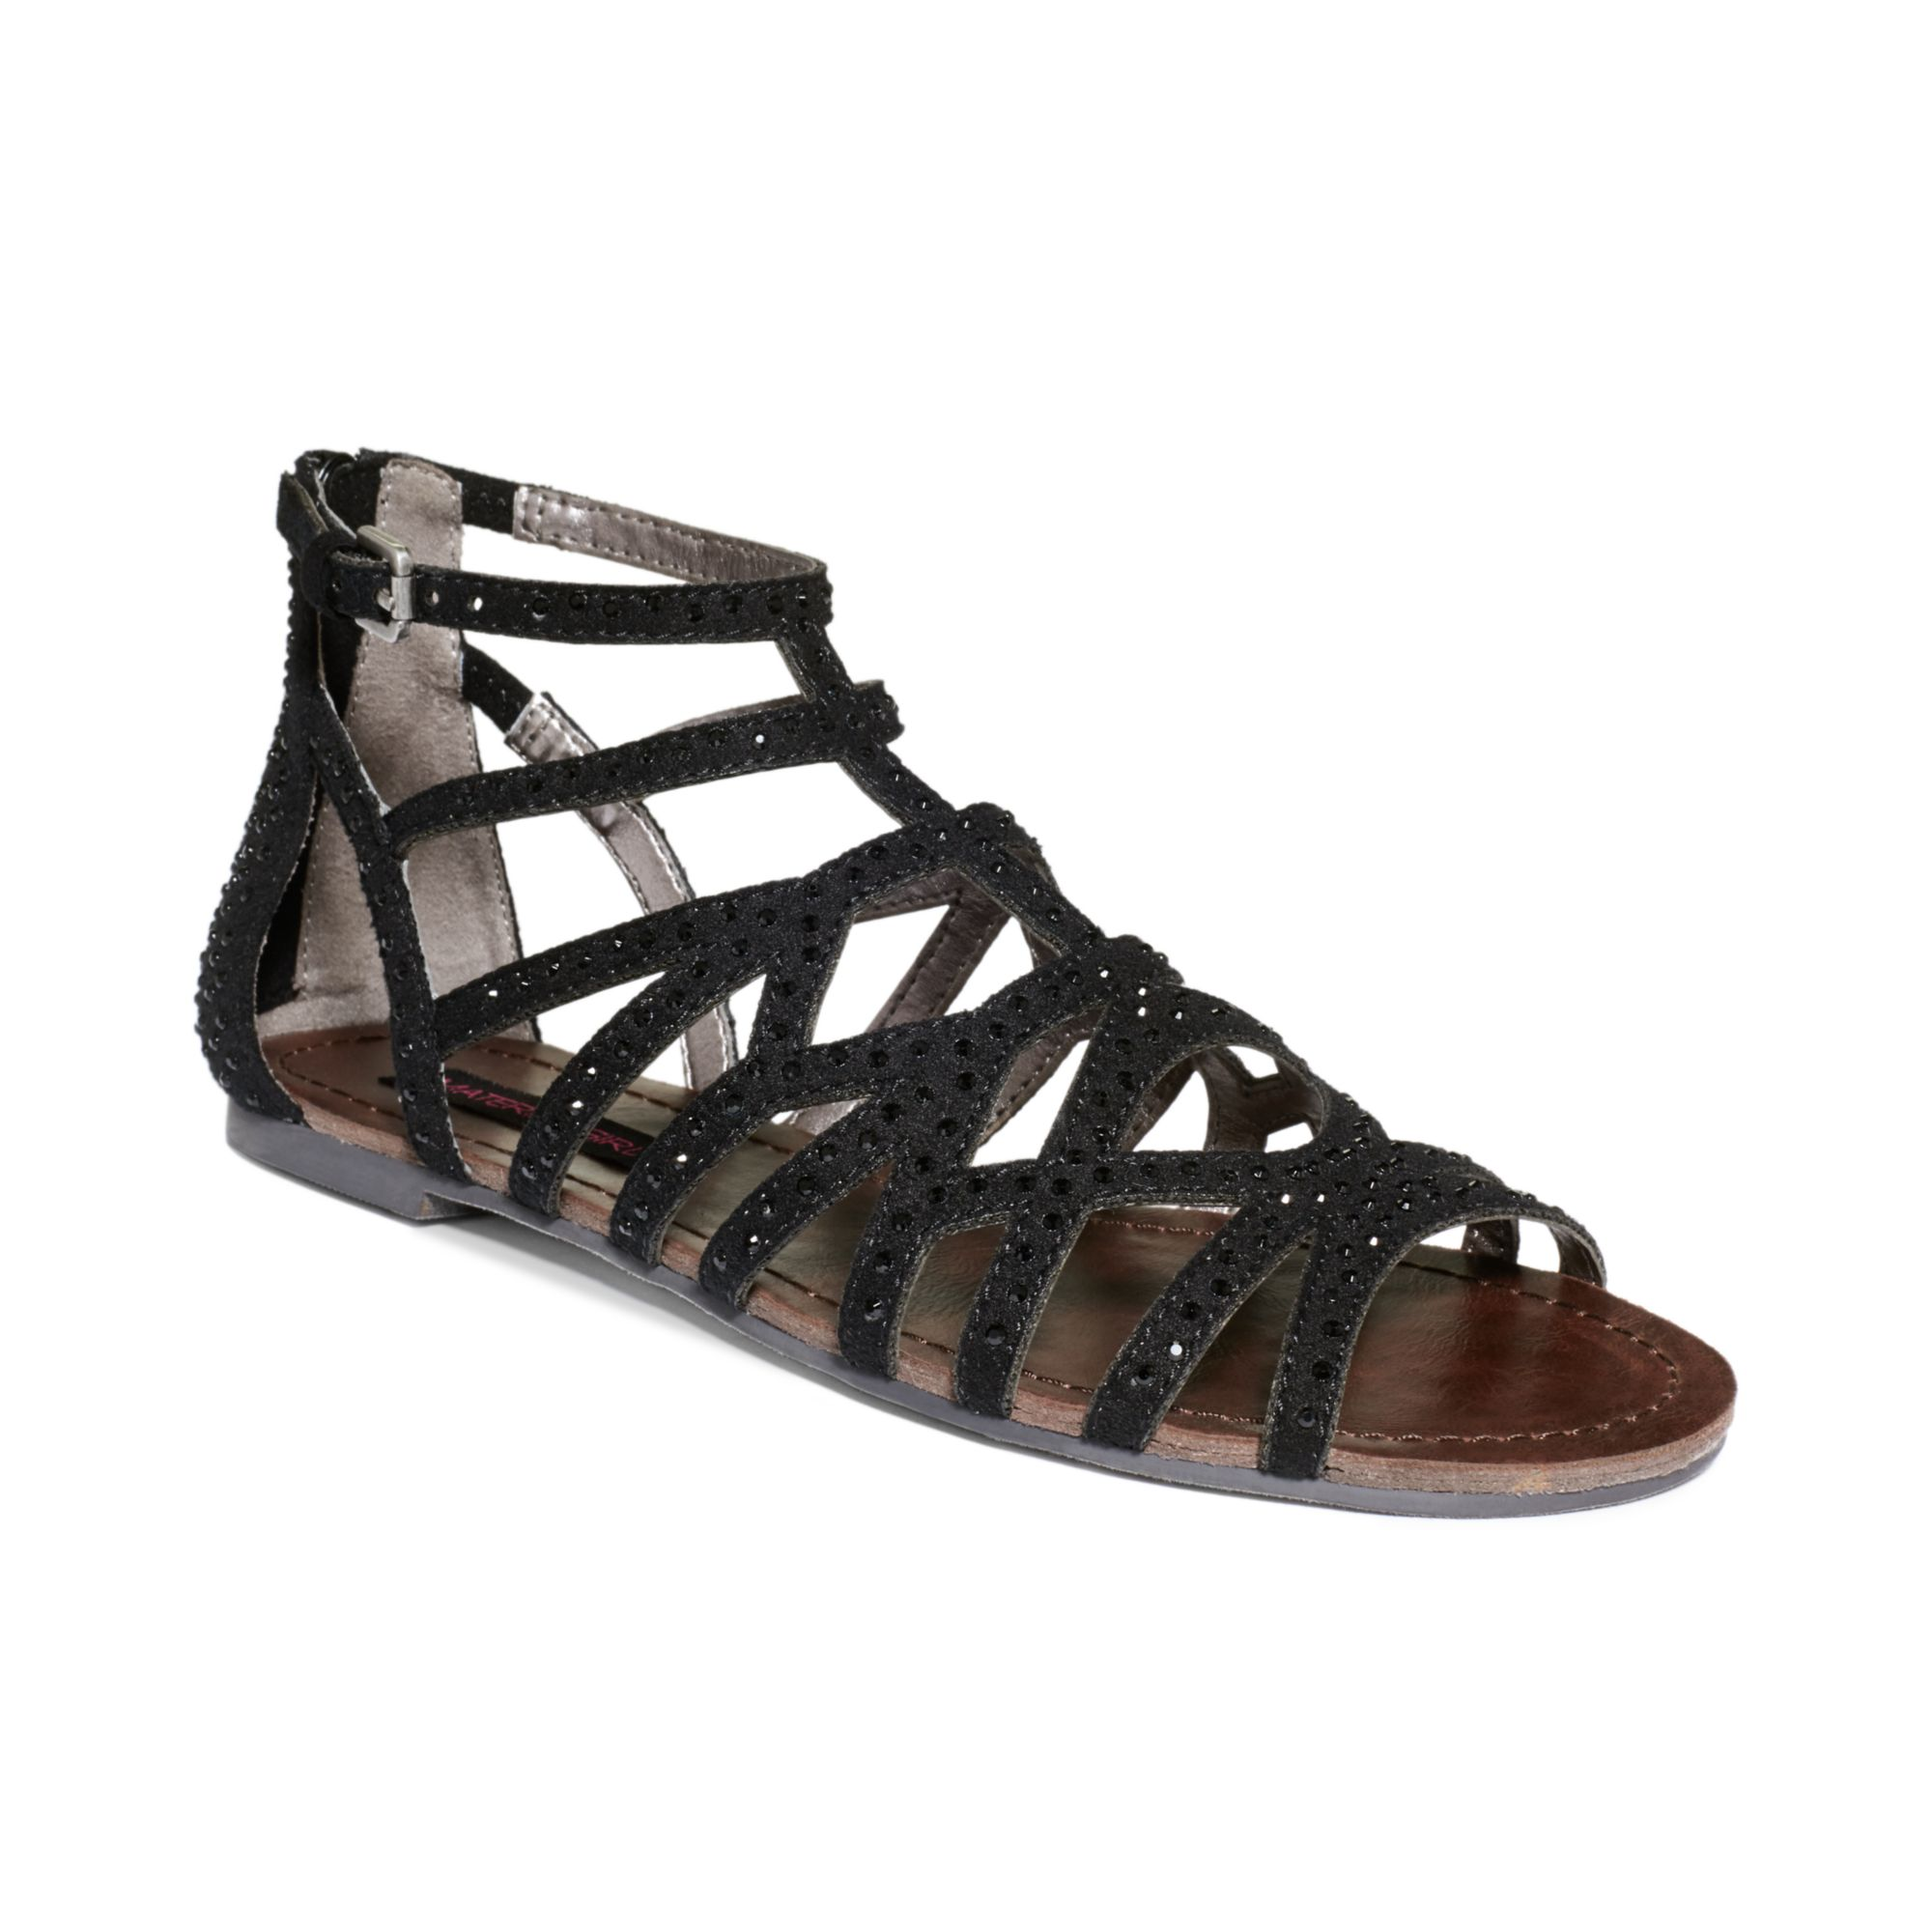 Lyst Material Girl Aries Gladiator Flat Sandals In Black